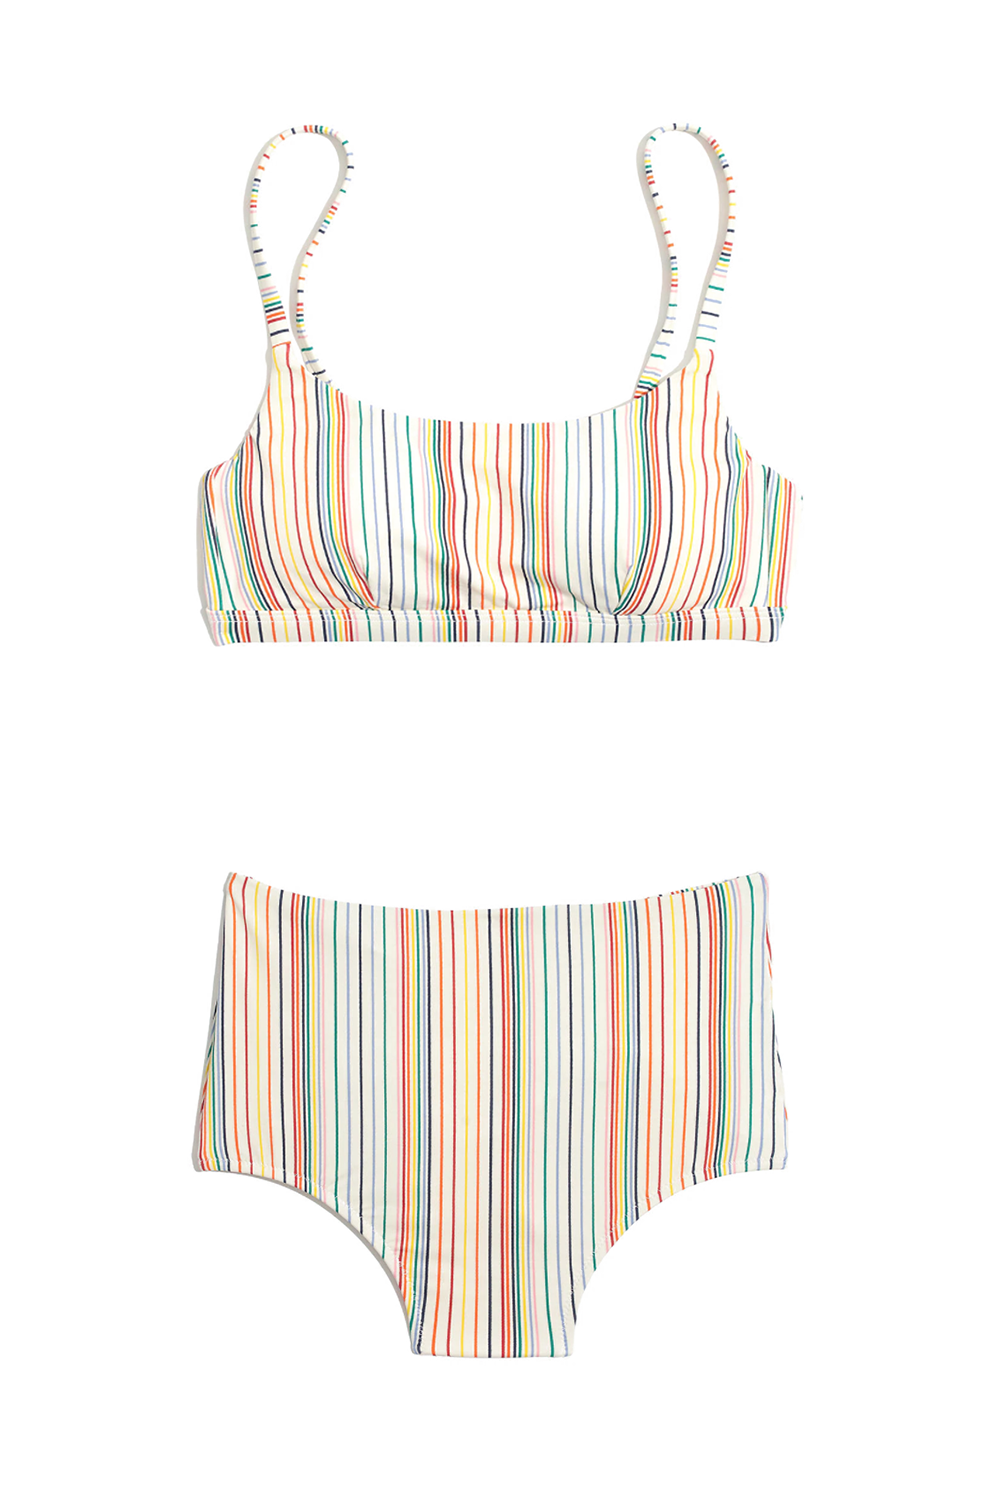 Best for Lounging by the Pool Second Wave Rainbow Stripe Bikini Madewell madewell.com $49.50 SHOP THE TOP SHOP THE BOTTOM This swimsuit is made from recycled plastic so you can feel good knowing your bikini purchase helped the environment. The rainbow stripes add a cheerful attitude to your summer outfit and have a slight retro feel when worn with the matching high-waisted bottoms.